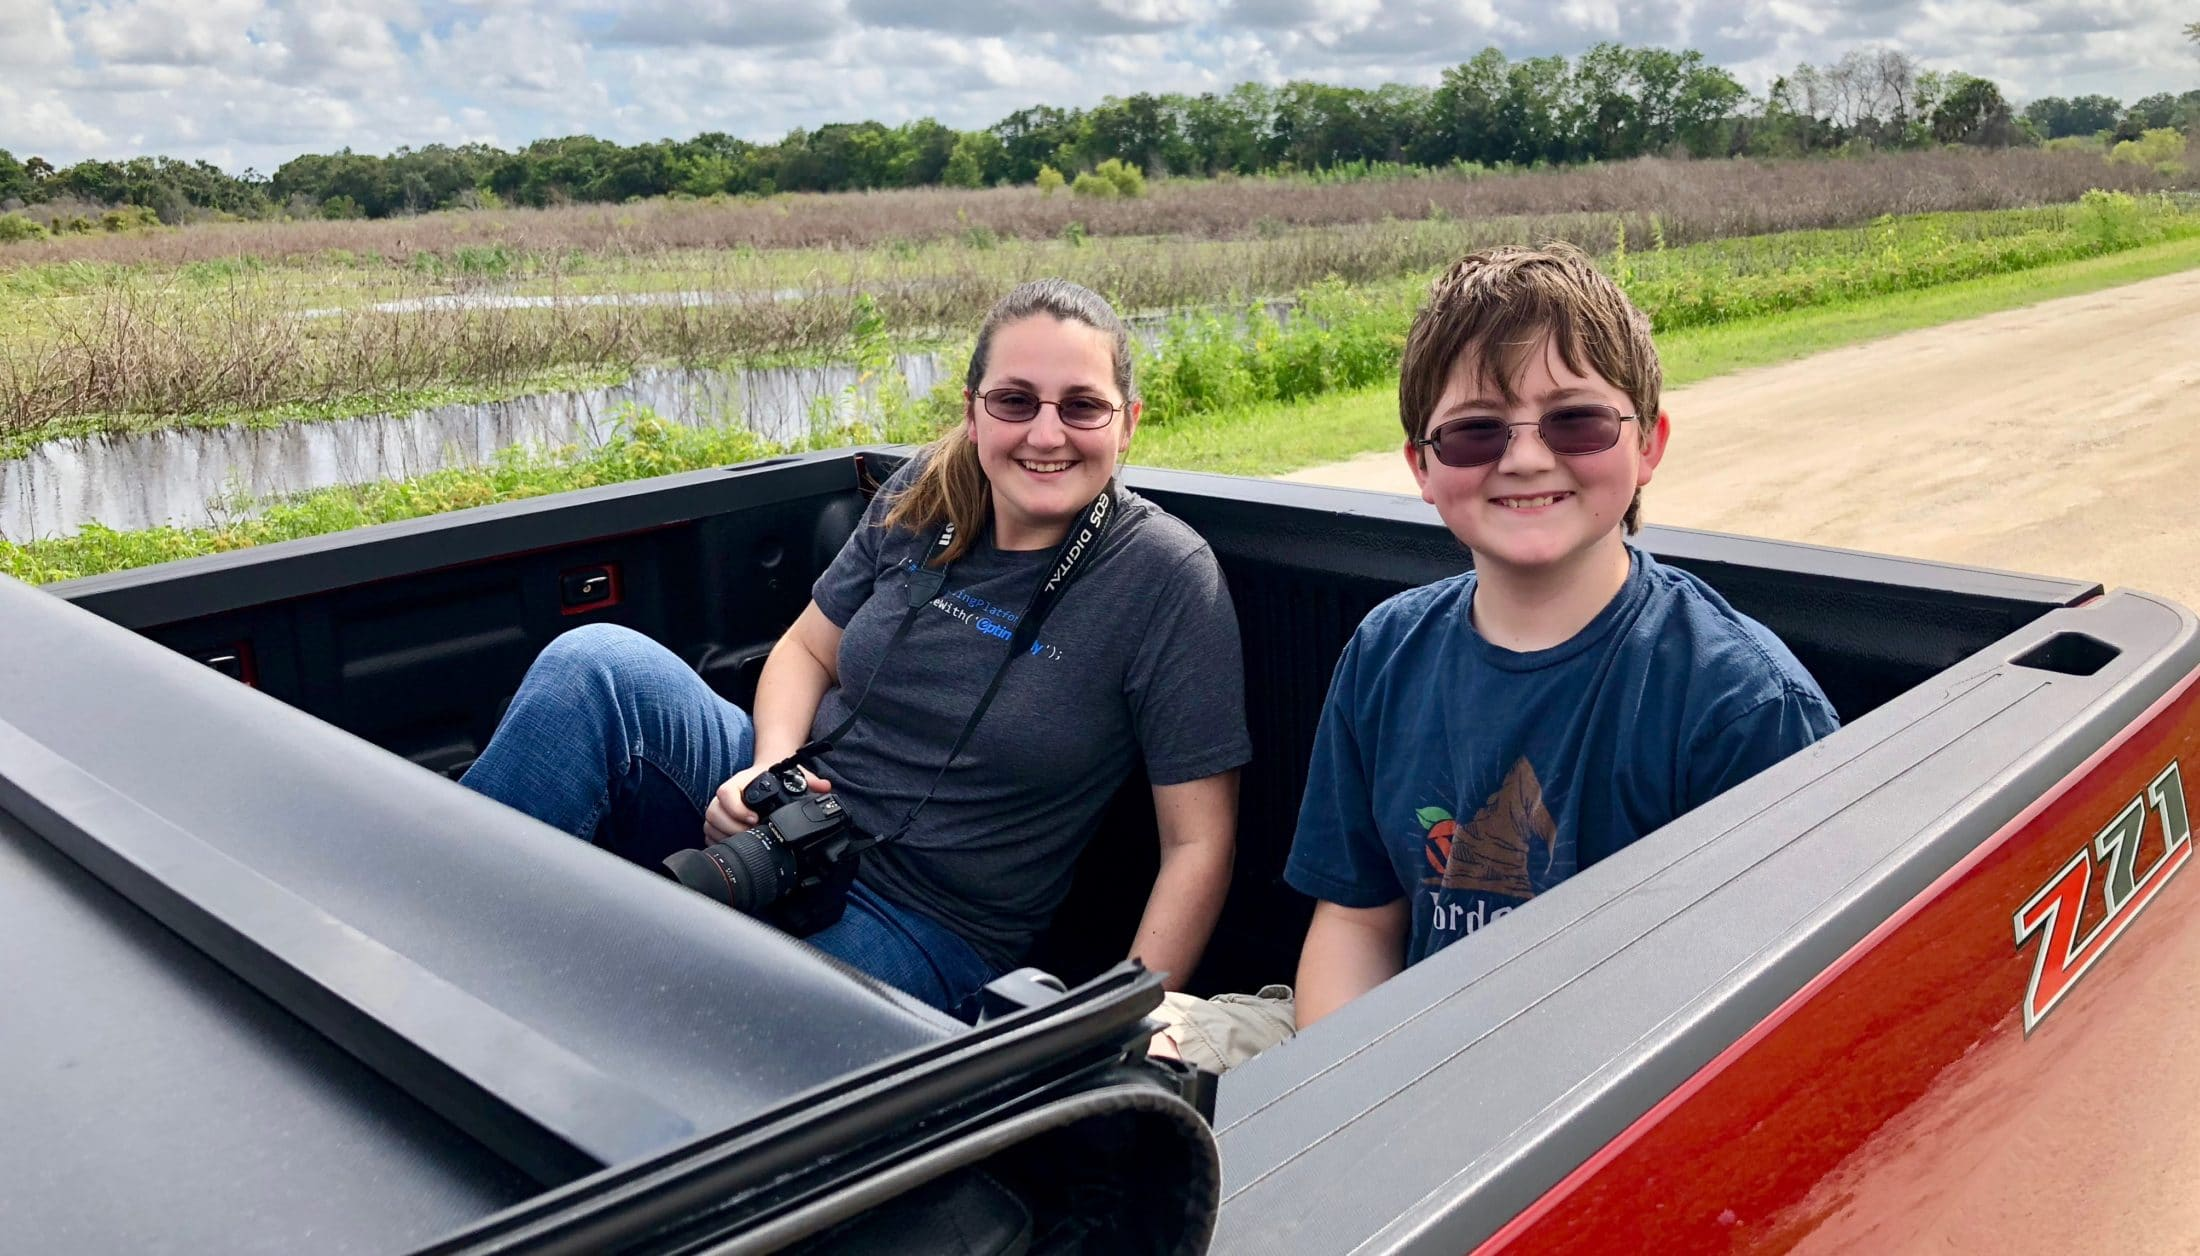 Driving in Lake Apopka Wildlife Drive